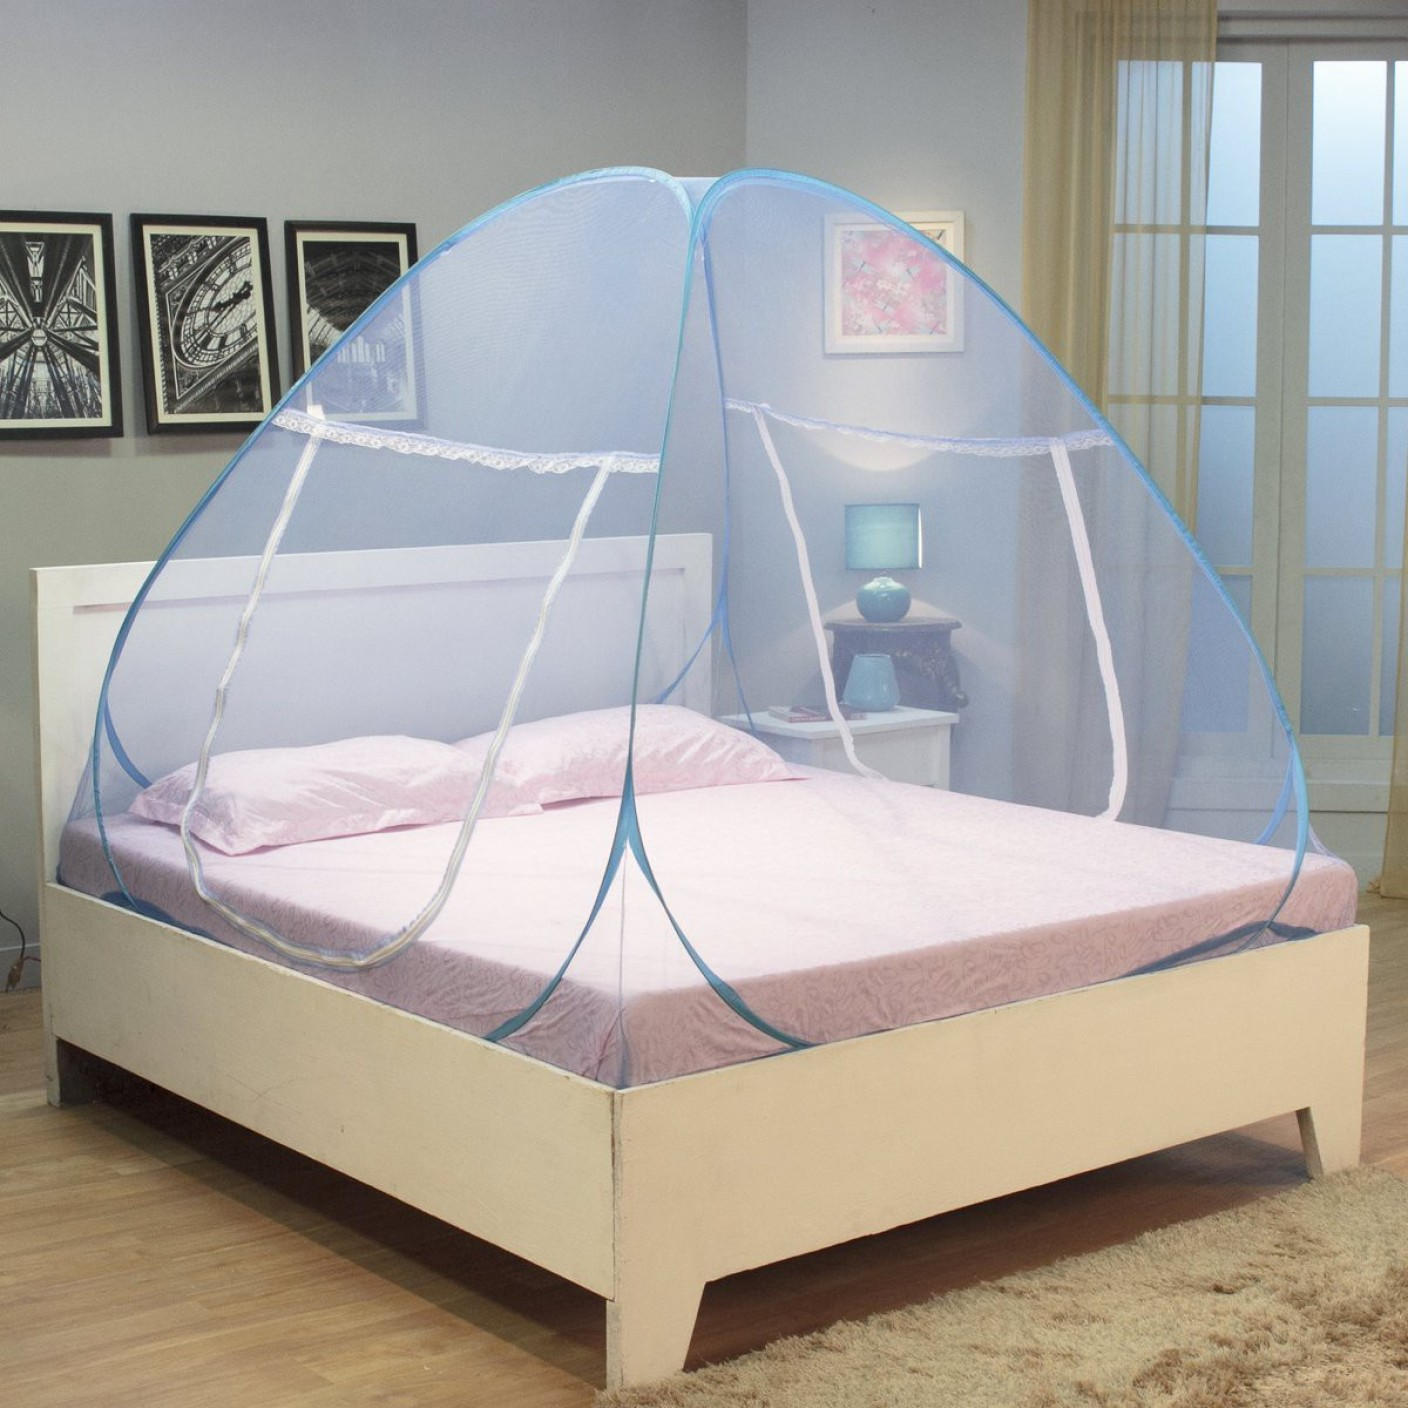 Baby Bed With Mosquito Net Online India